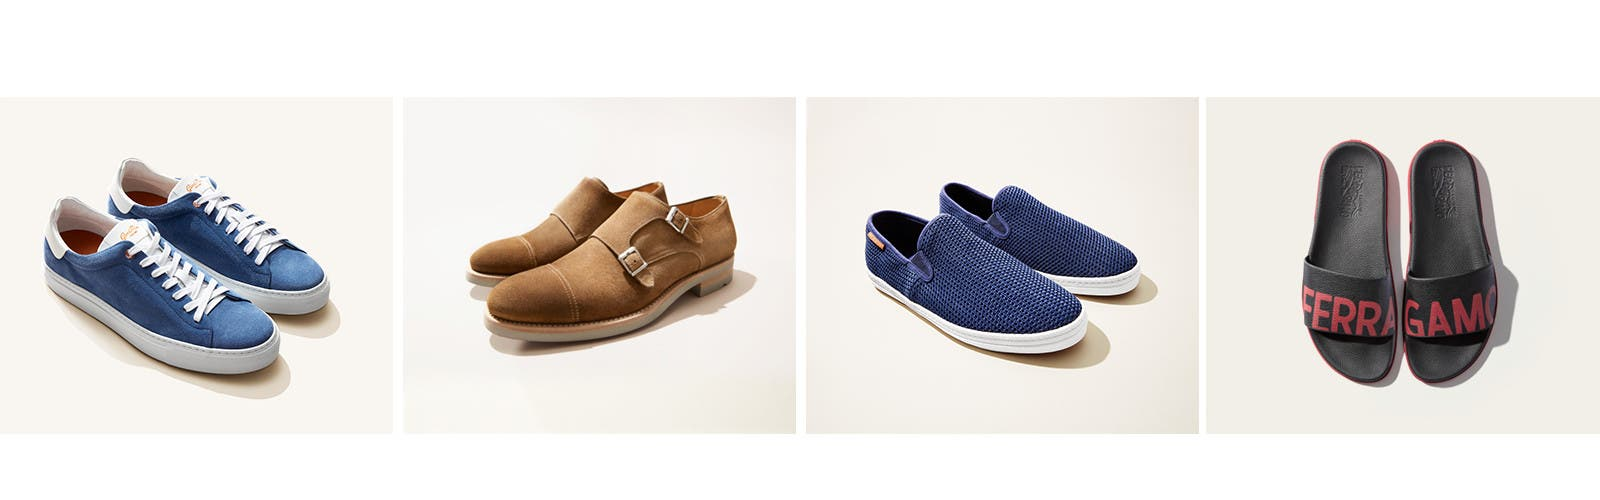 60c700b791e369 New men s shoes for spring.